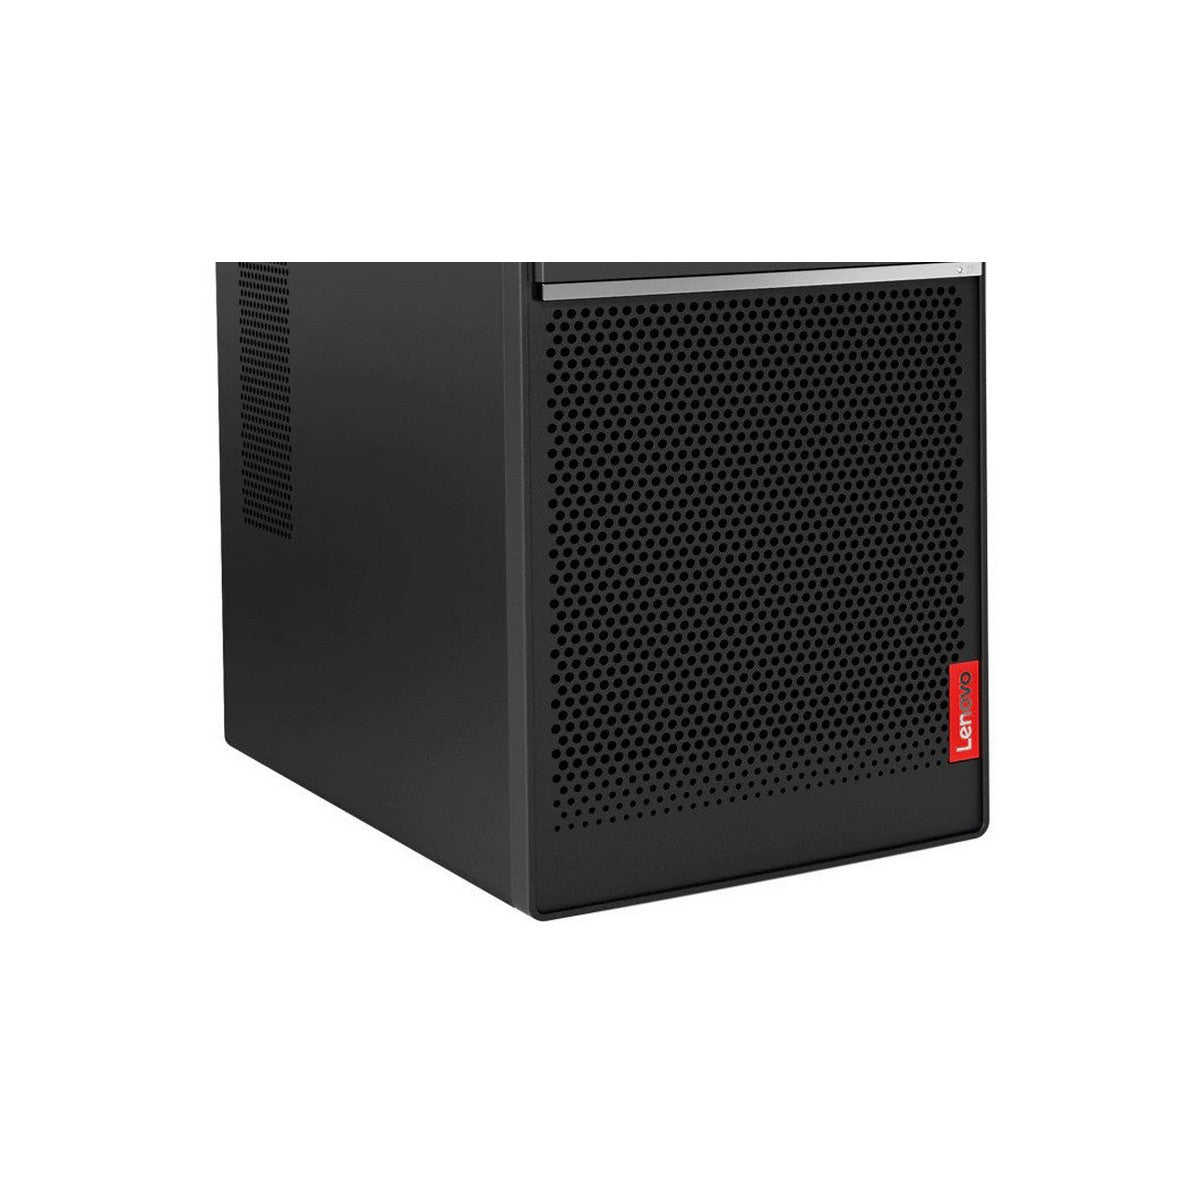 Lenovo V530 Tower Desktop , Intel Core i3 i3-8100 6 MB Cache, 3.6 GHz, 4GB RAM, Intel HD630 GPU, 1TB HDD, Windows 10 Pro, Black